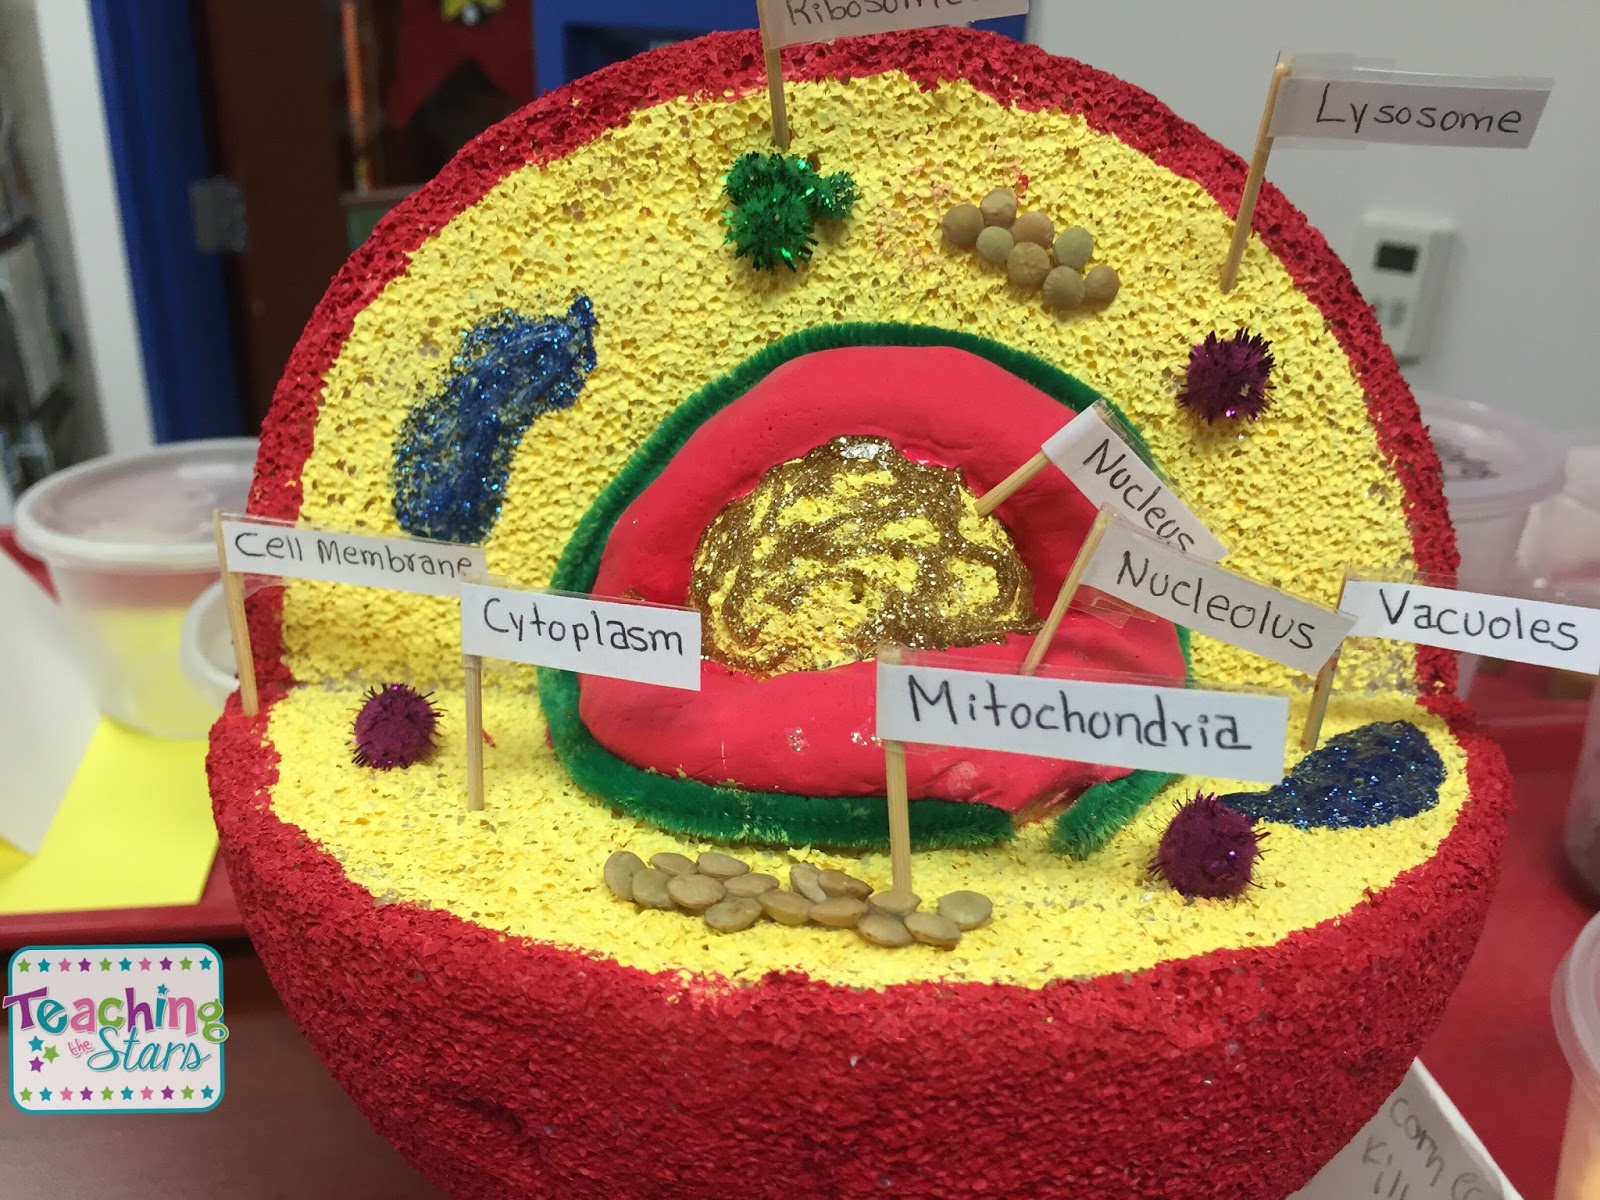 Animal and Plant Cell Models - Teaching the Stars